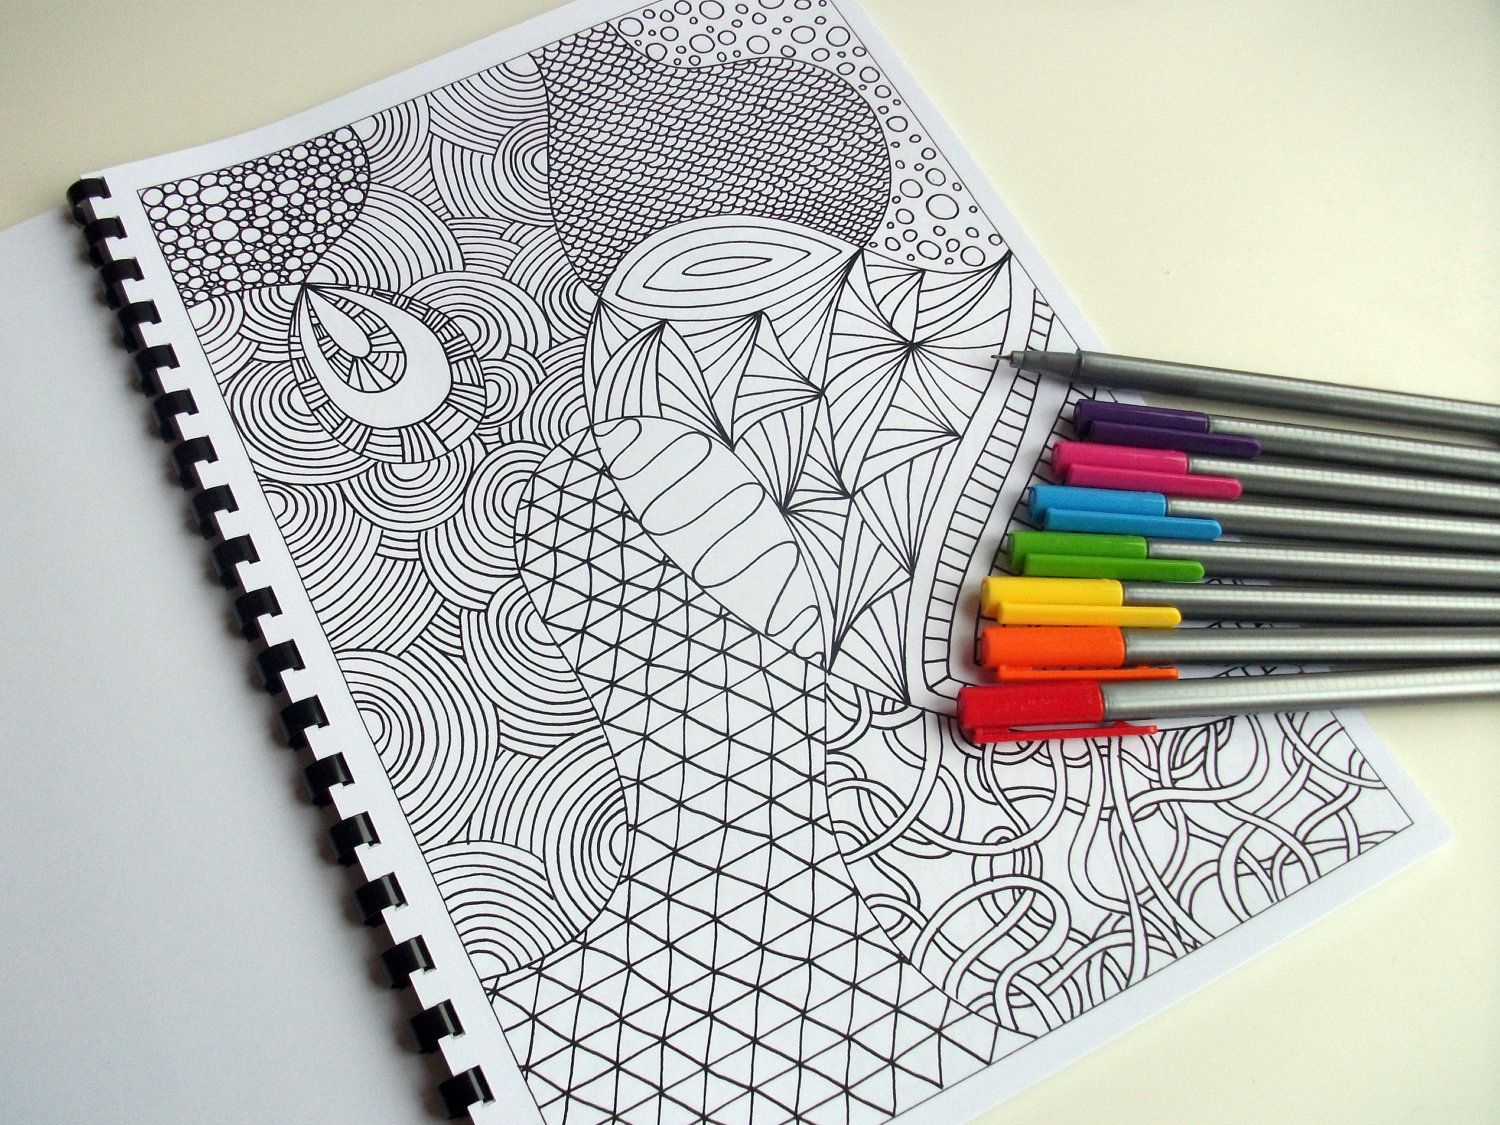 Intricate Coloring Pages For Adults : Coloring book zentangle inspired printable от joartyjo на etsy